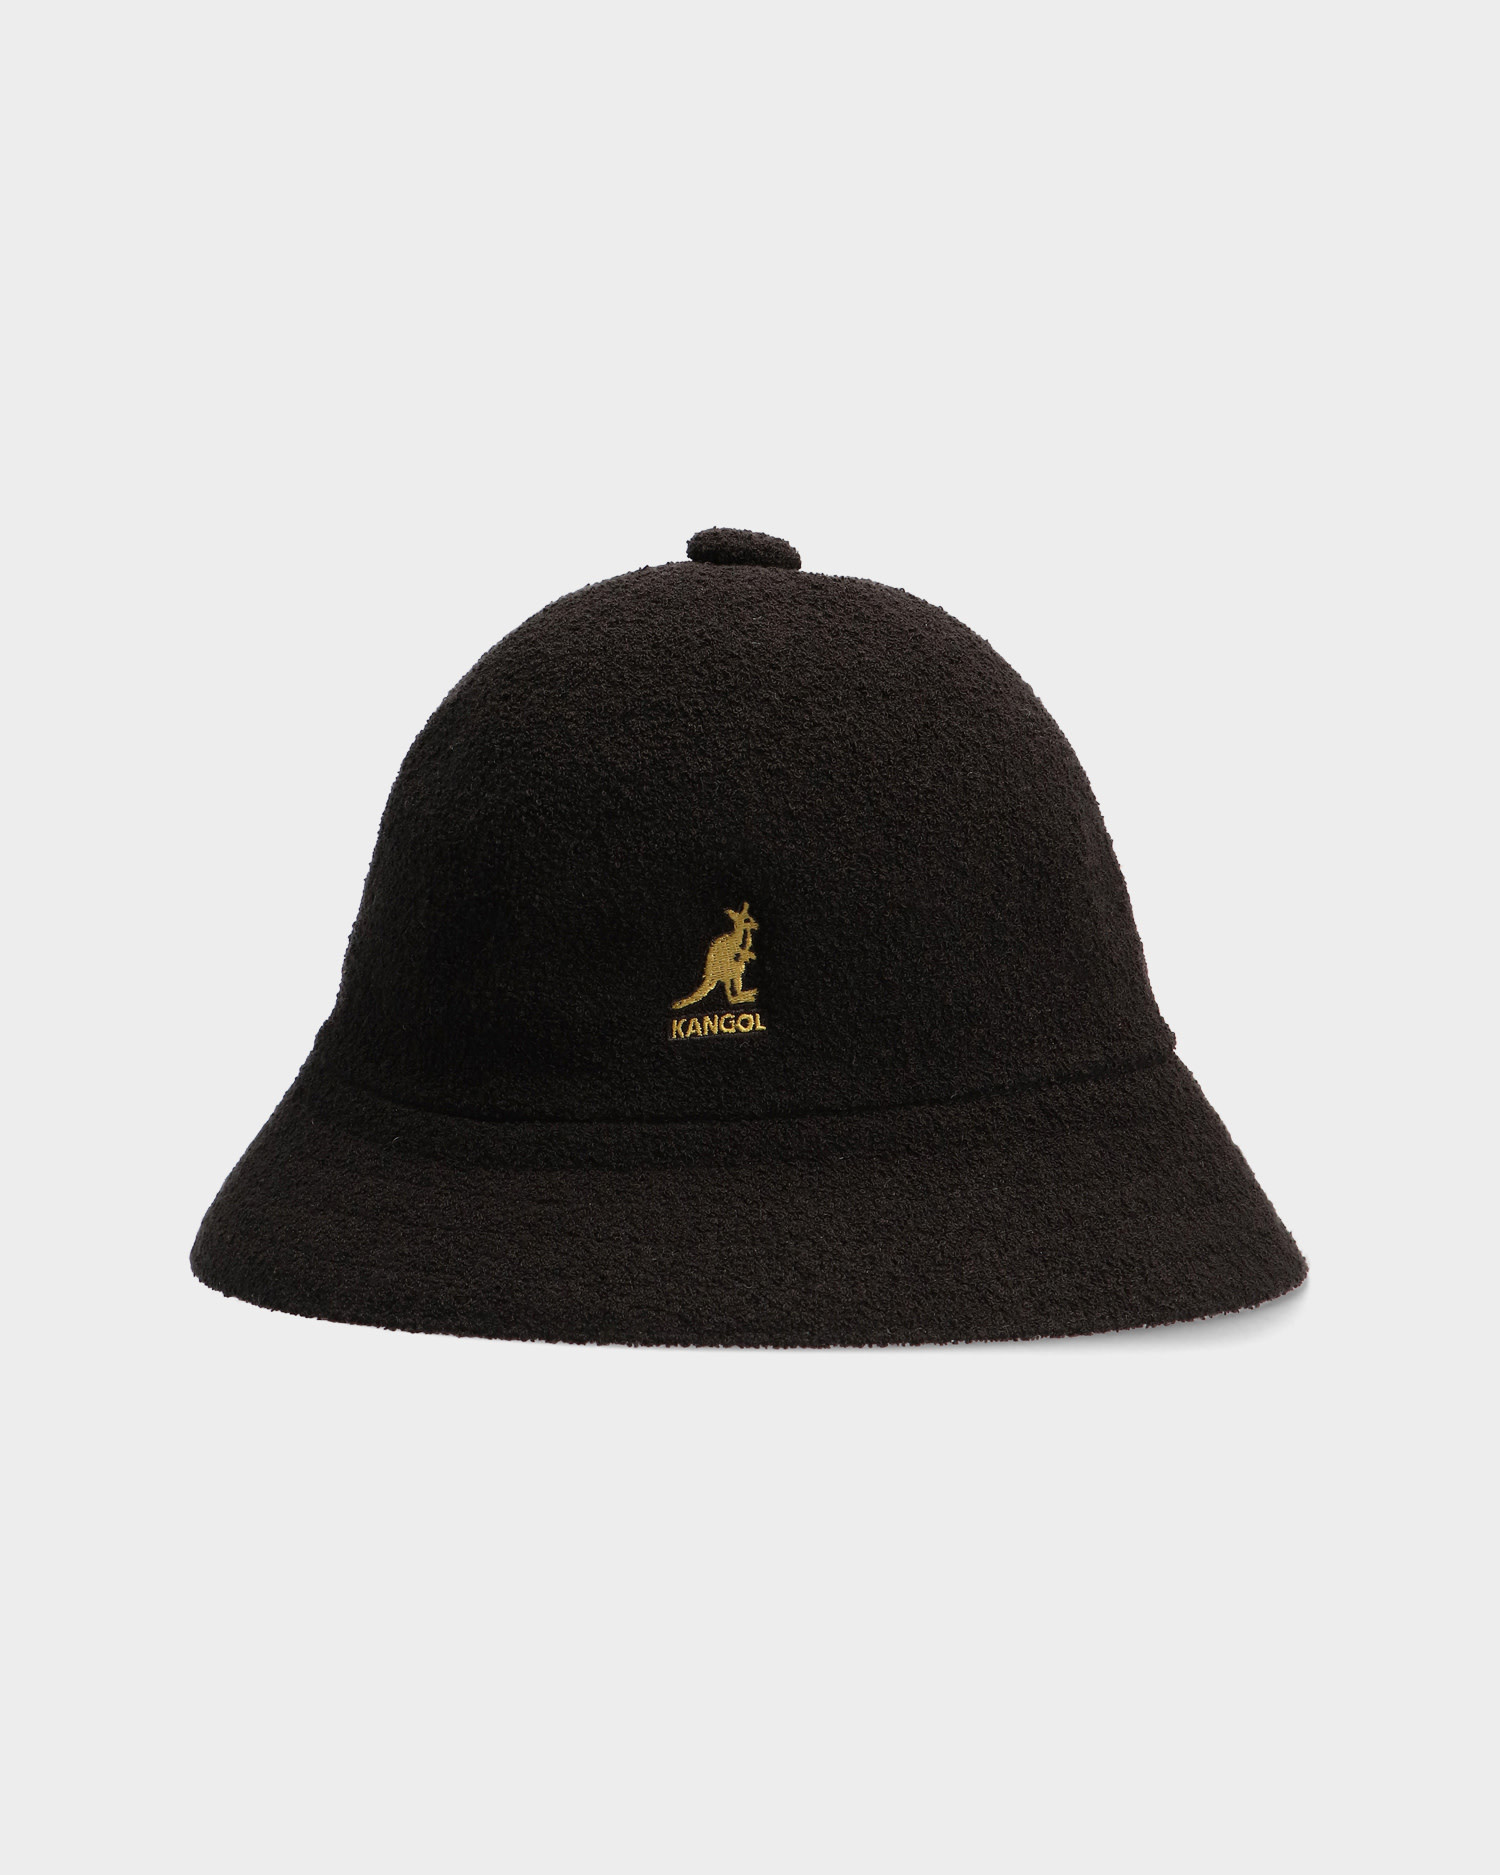 Kangol Bermuda Casual Black Gold